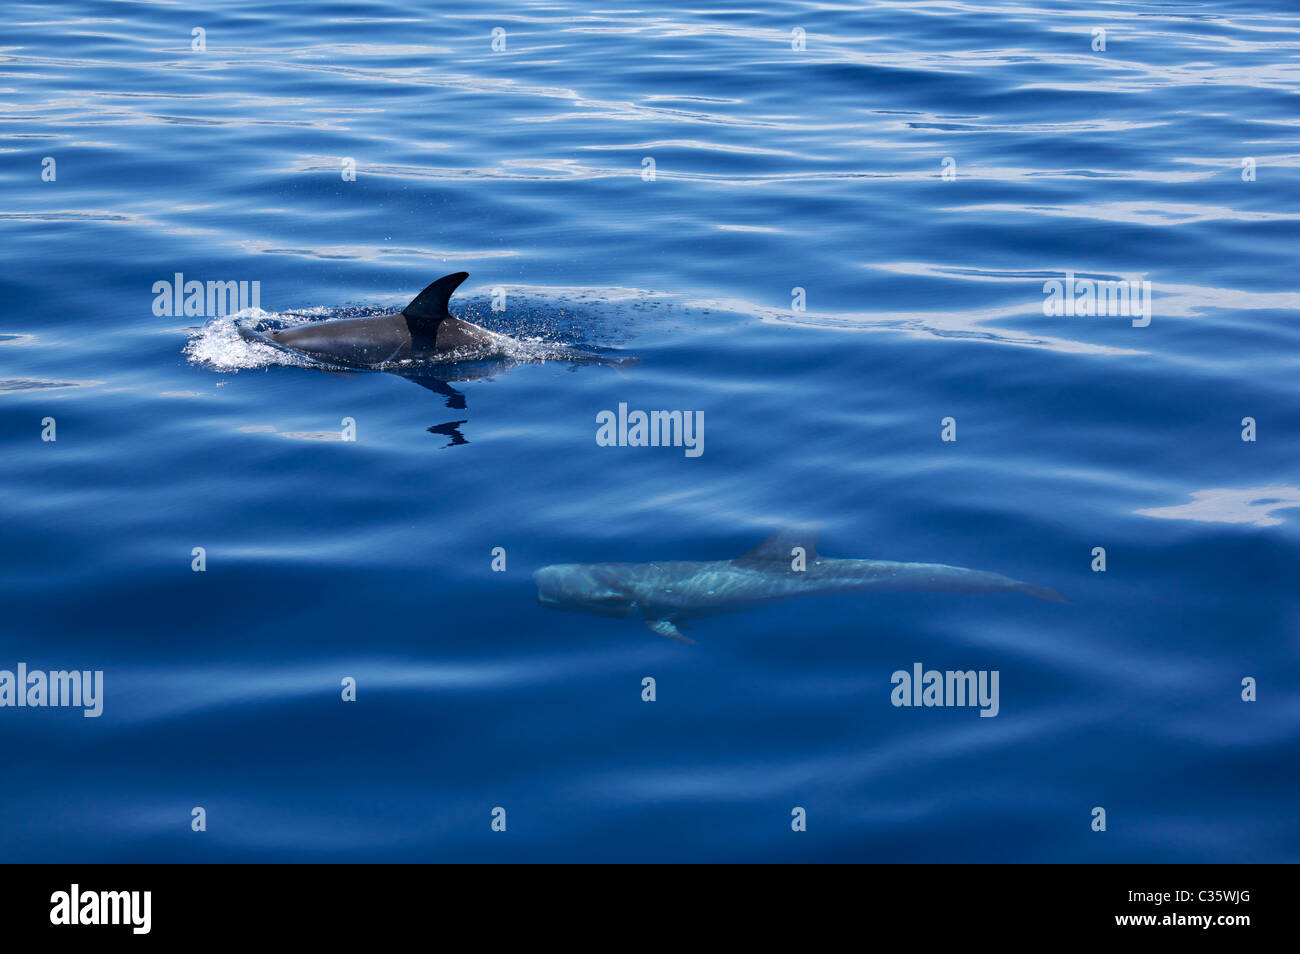 Dolphin watching in Atlantic ocean, Fajal, Azores Island, Portugal, Europe - Stock Image